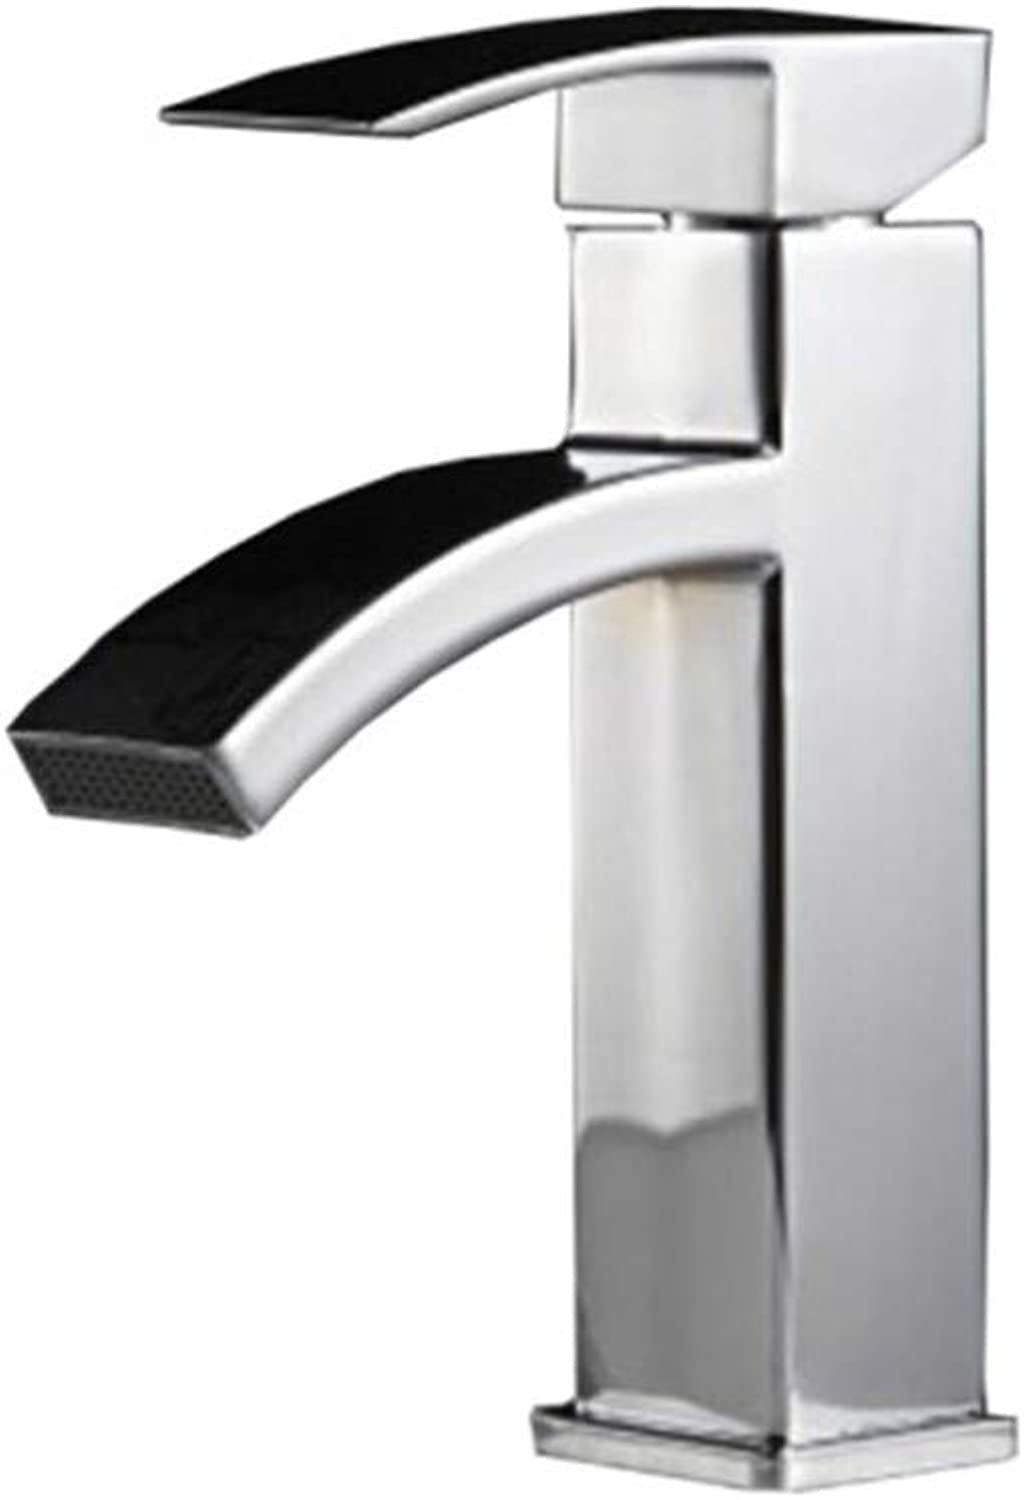 Counter Drinking Designer Archbathroom Faucet Hot and Cold Dual Use Single Hole Single Handle Sitting Faucet Waterfall